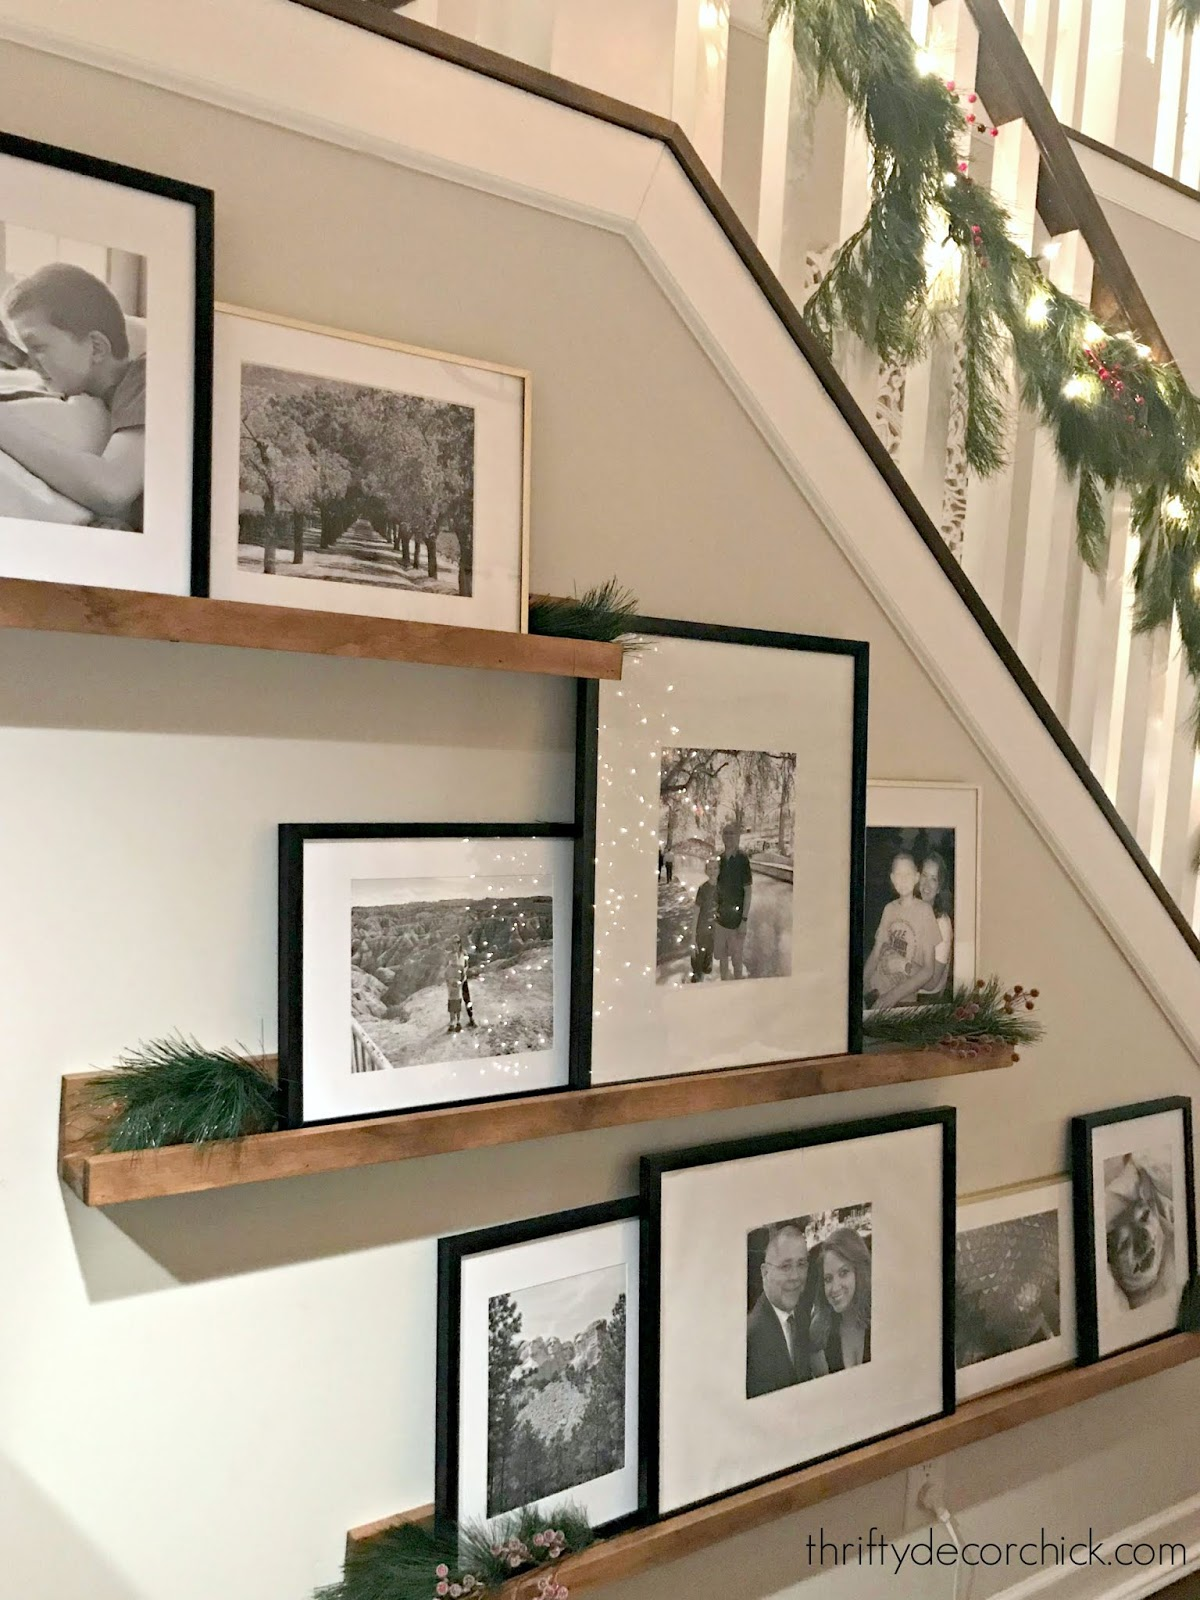 DIY wood picture shelves from 1x4s